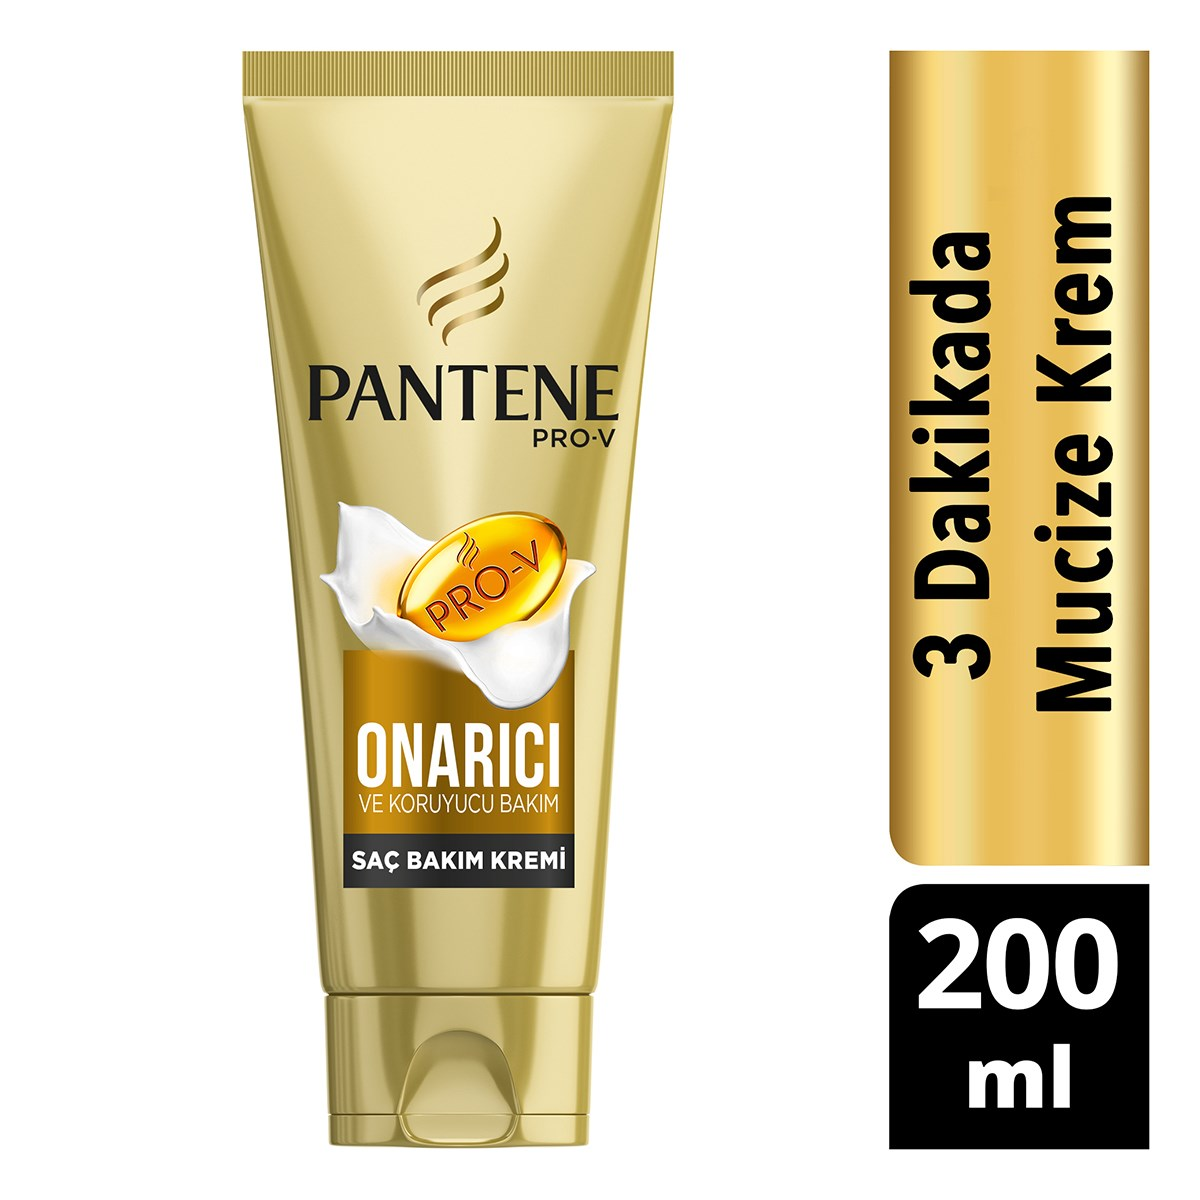 Sac Bakim Kremi 3 Minute Miracle Onarici Ve Koruyucu Bakim 200 Ml